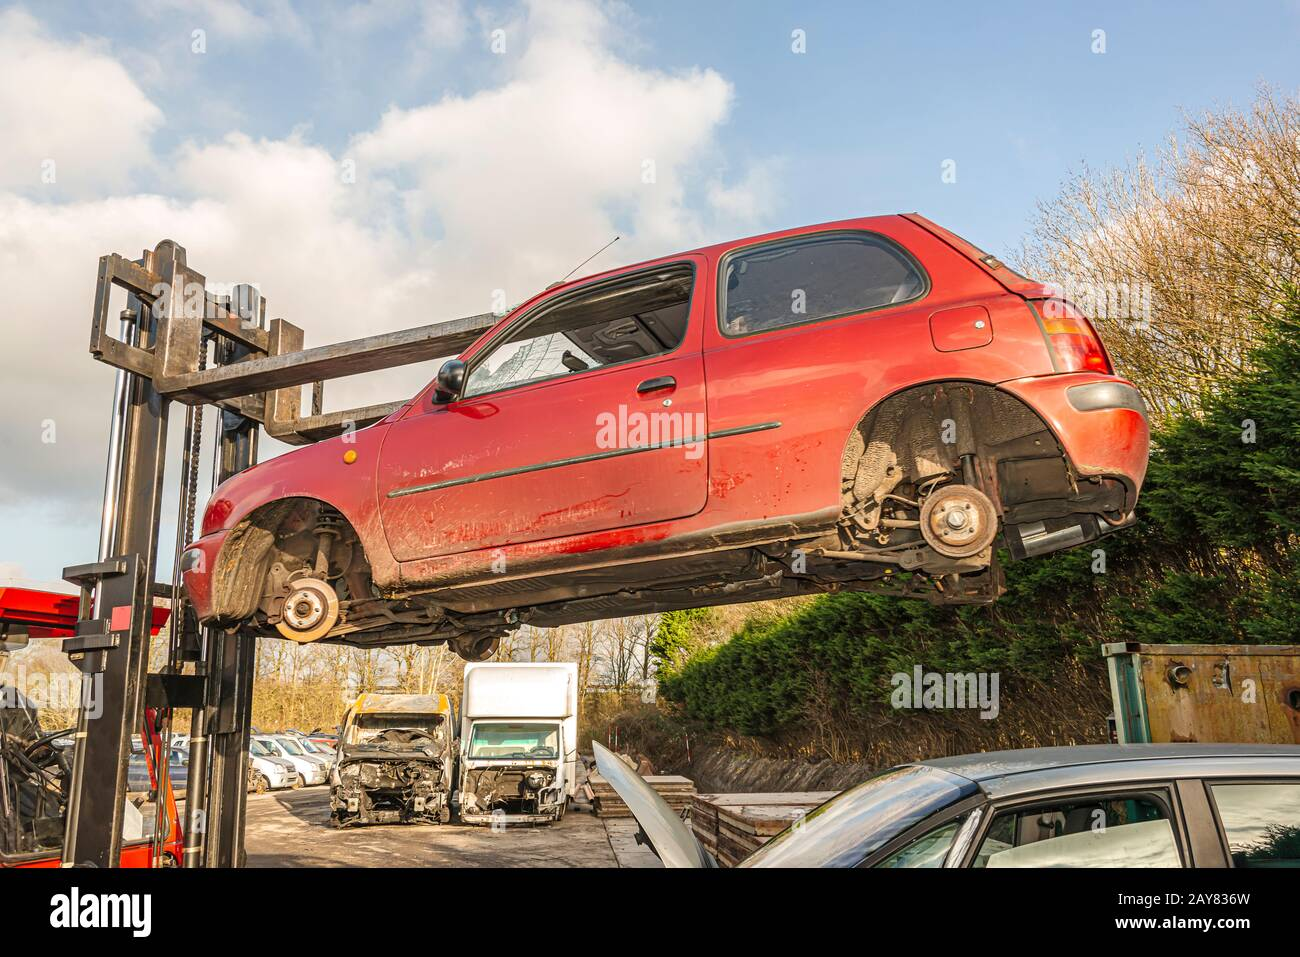 car wreck hanging from a lift truck high in the air on a dismantling site Stock Photo